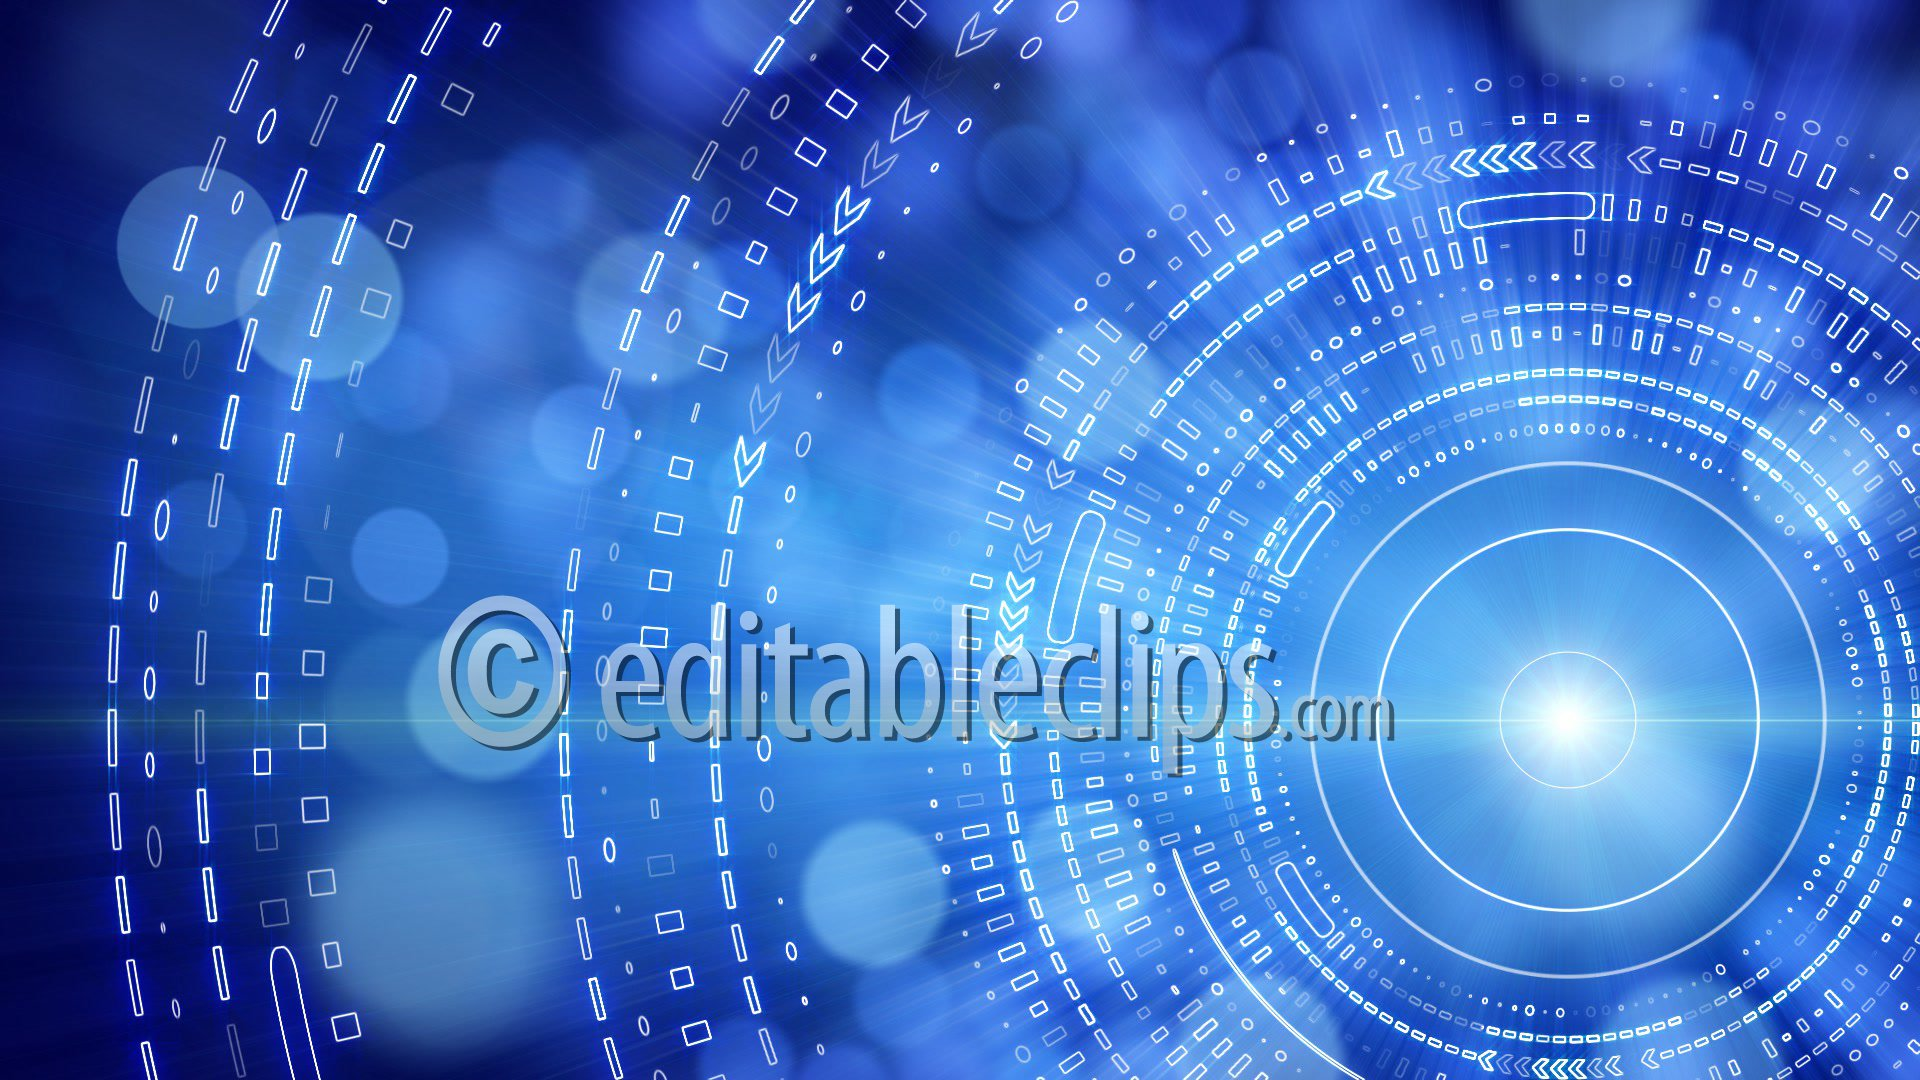 Blue Abstract Background Lights Hd 1080 Editable Clips